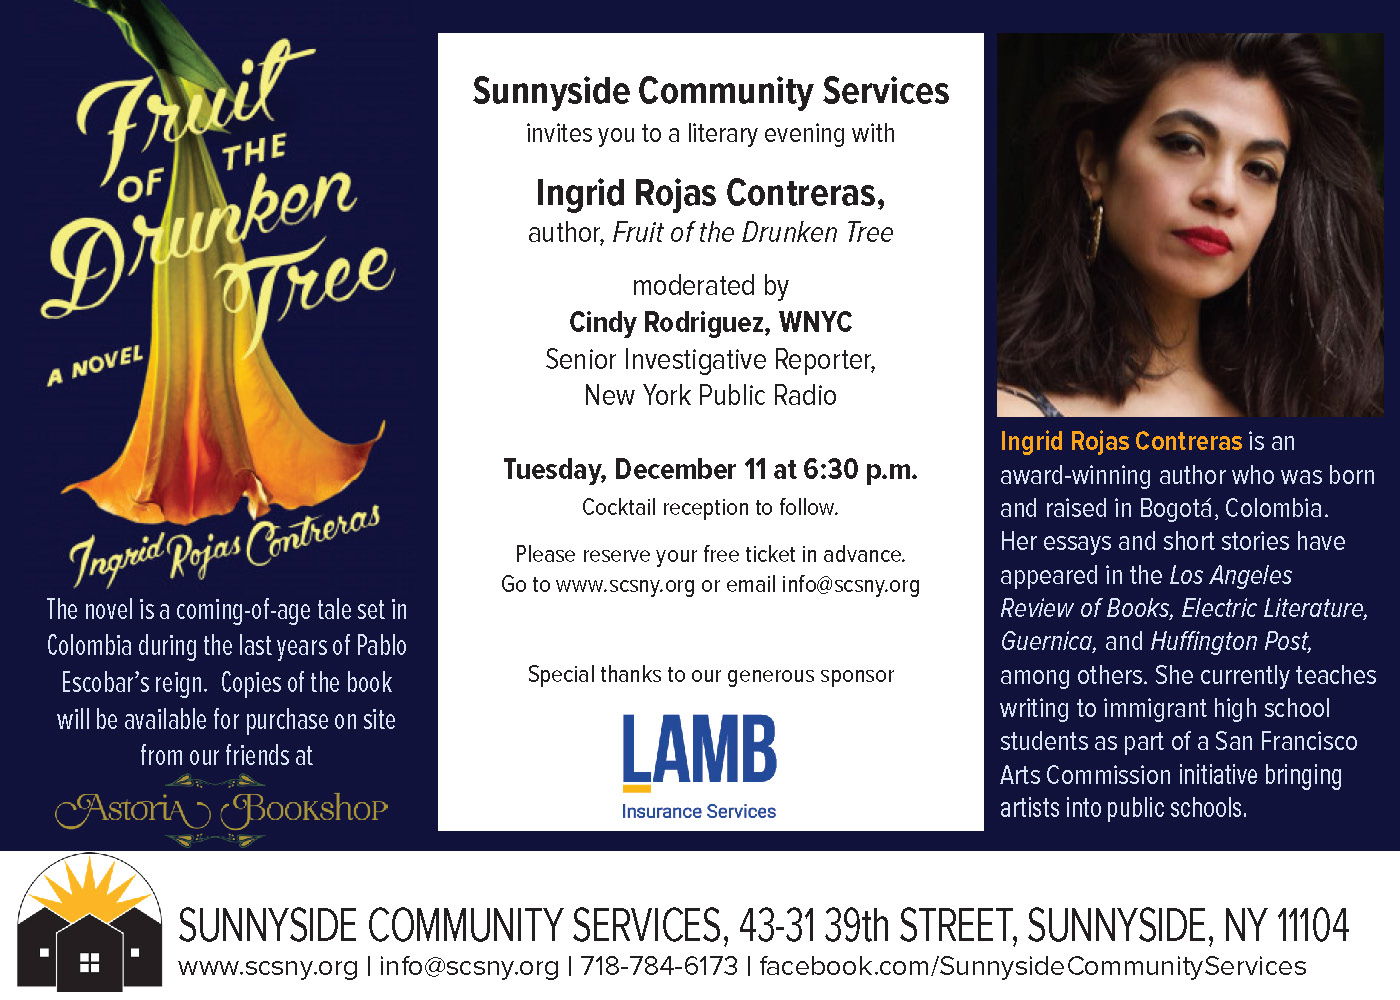 Literary Event with Ingrid Rojas Contreras, Author of Fruit of the Drunken Tree, on December 11, 2018